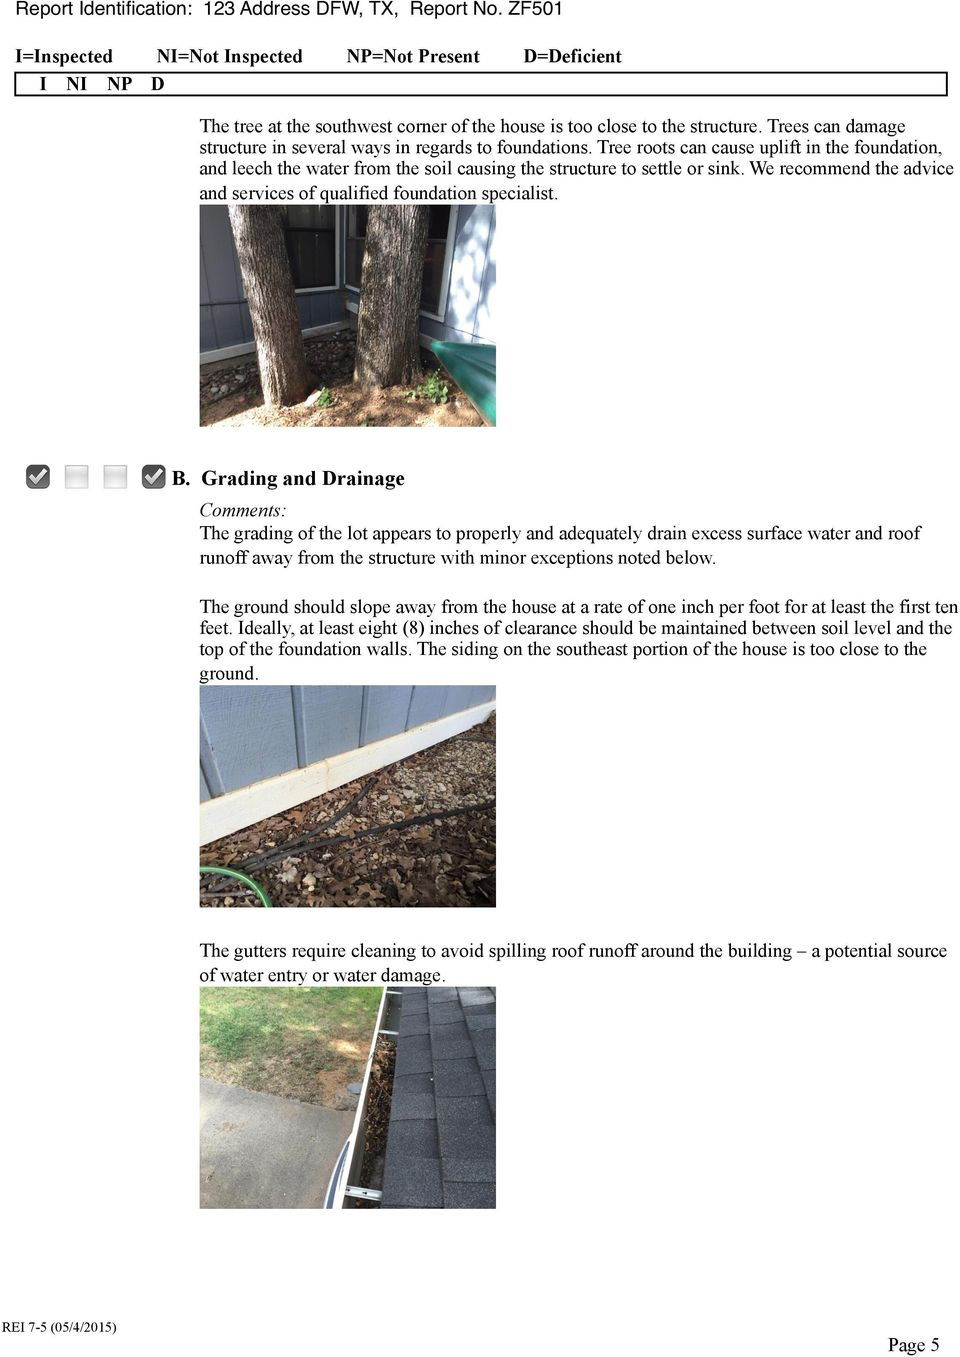 Grading and Drainage Comments: The grading of the lot appears to properly and adequately drain excess surface water and roof runoff away from the structure with minor exceptions noted below.